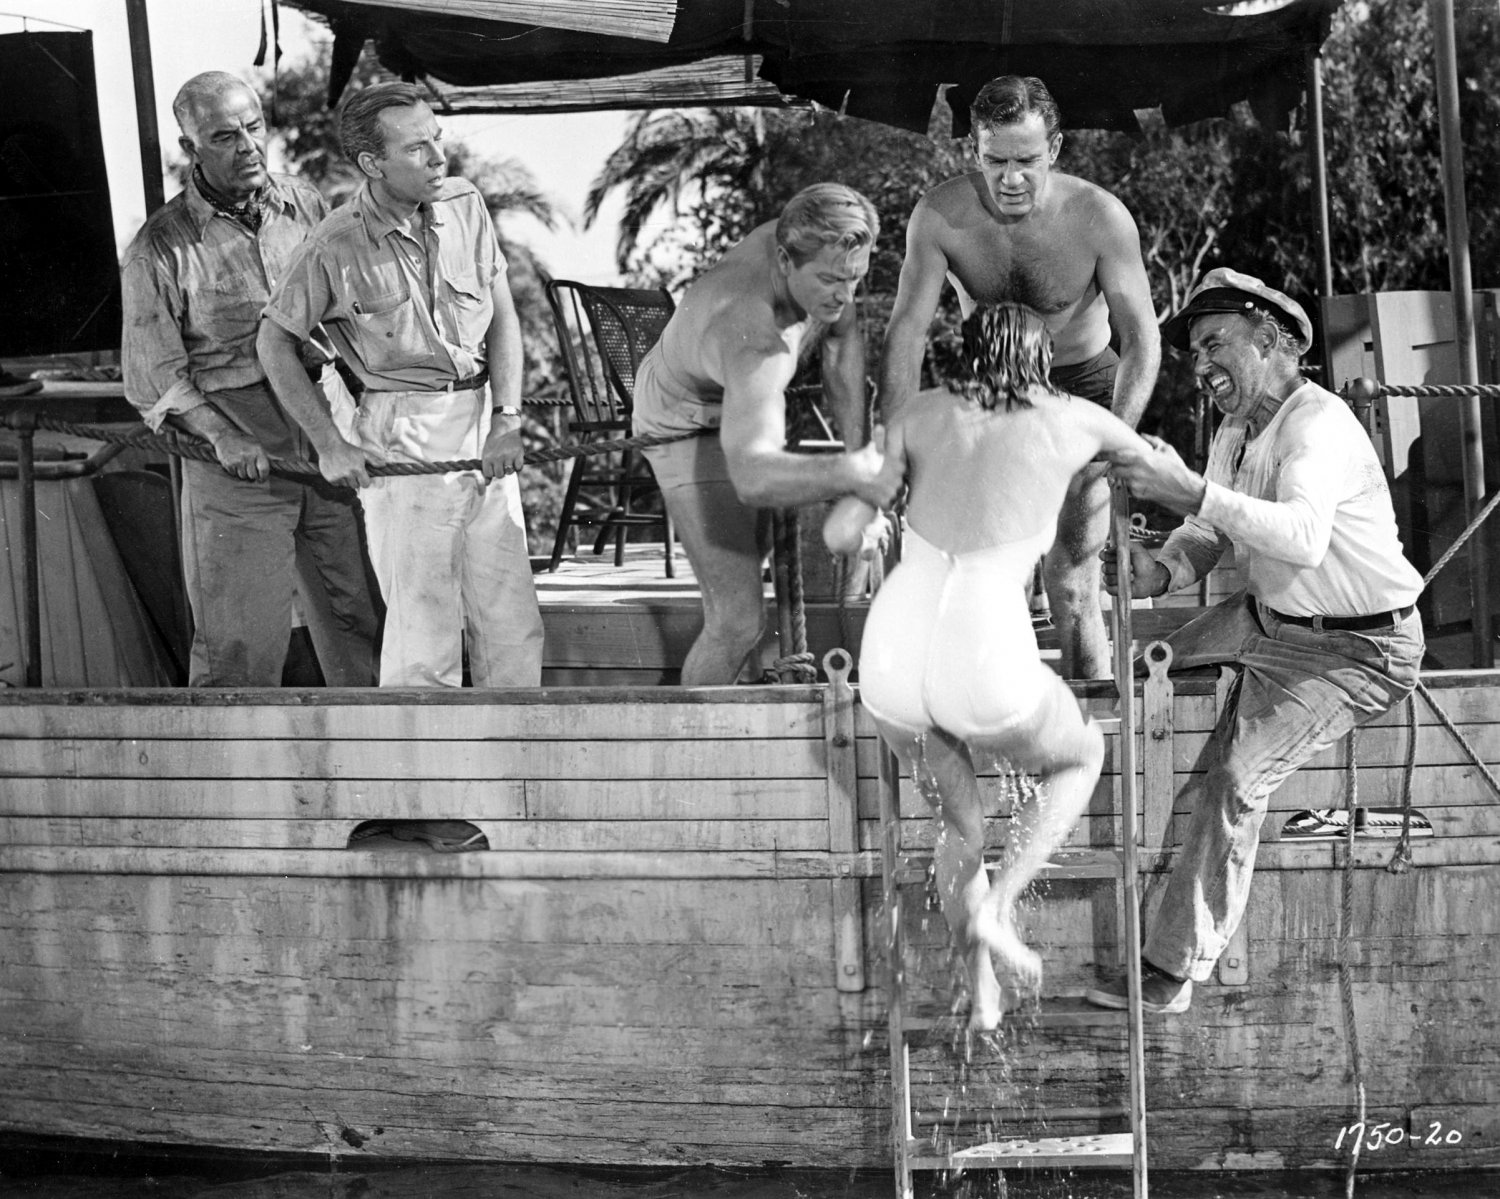 """RICHARD CARLSON, JULIE ADAMS & OTHERS IN """"CREATURE FROM THE BLACK LAGOON"""" 8X10 PHOTO (CC-182)"""